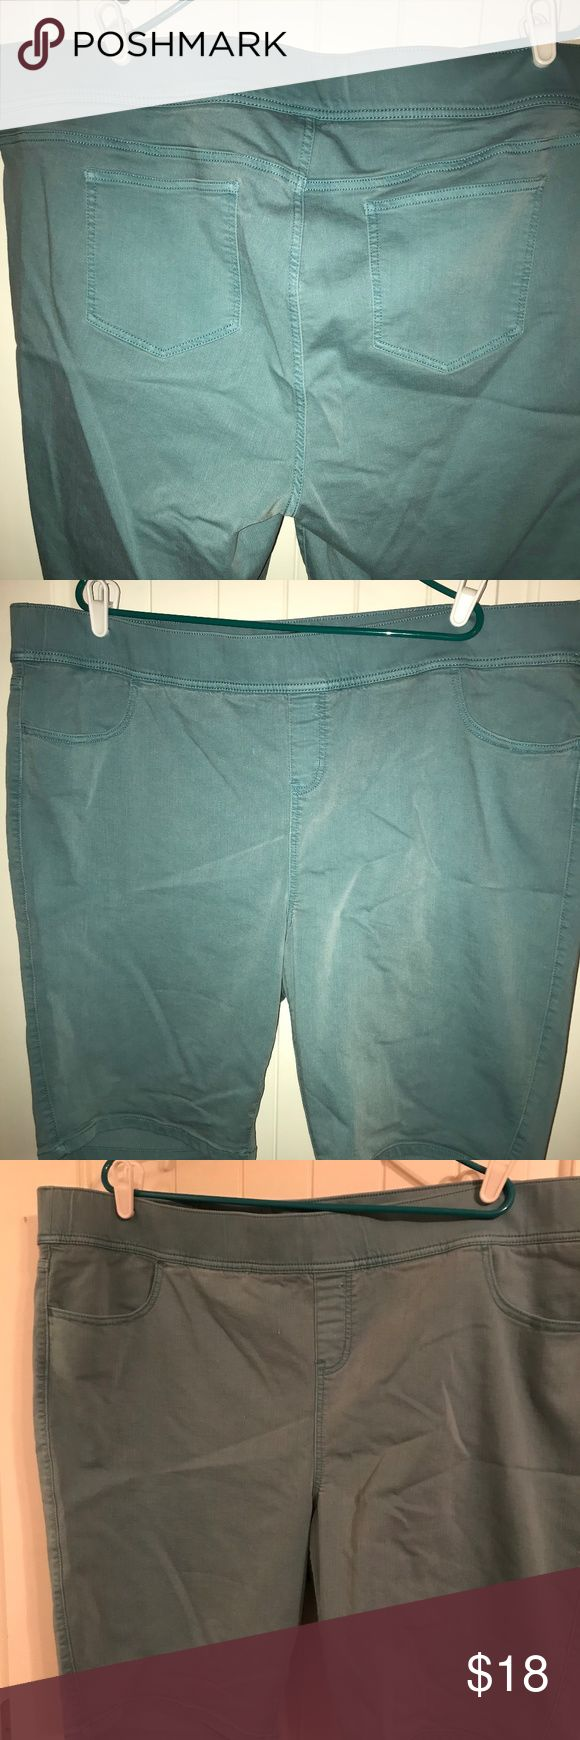 Torrid Lean Jean Bermudas 4x Torrid's lean jeans, as shorts!  Knee length, stretch denim in a light turquoise/green.  (It's a little more pastel than it looks in the pictures. Sorry. The light in my house is awful.)  Fit TTS, but if you're muffin-toppy, I suggest sizing up.  Has front pockets, but they're teeny.  Might hold a chapstick, not your phone.  These were worn once before I decided the length didn't work on me.  I'll bundle! Make offers! :D torrid Shorts Bermudas